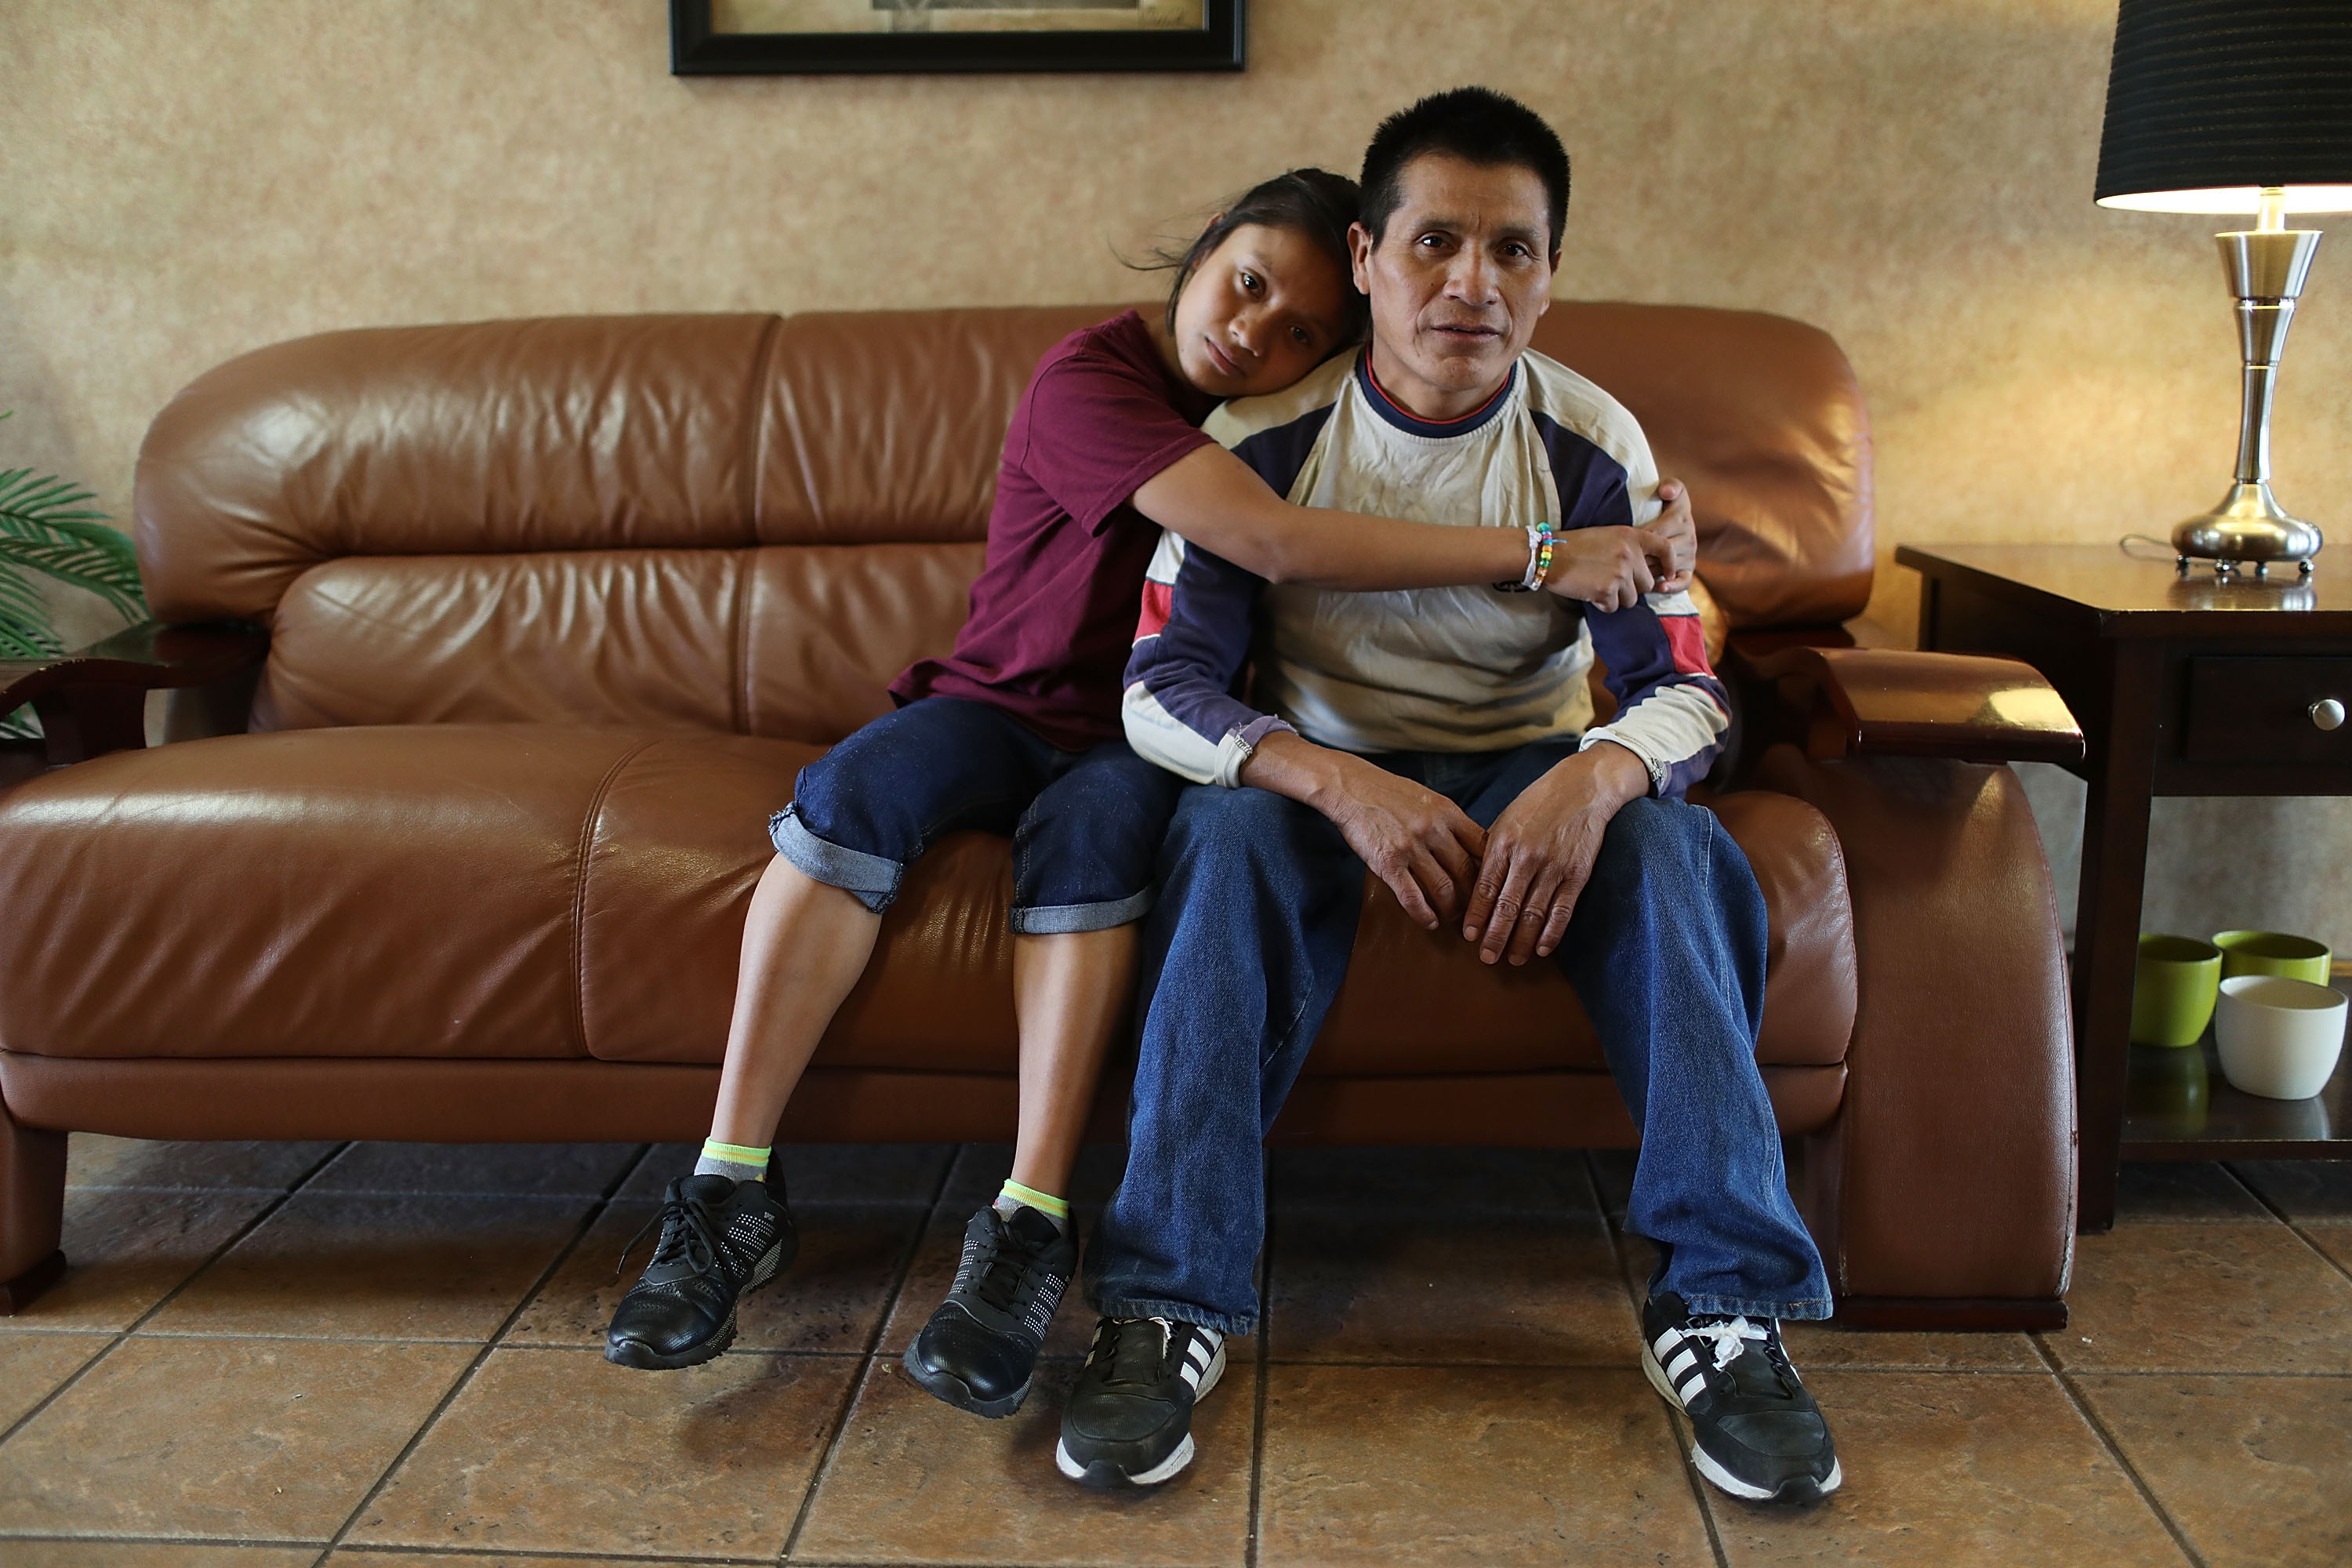 Hundreds of families could be deported almost as soon as they're reunited